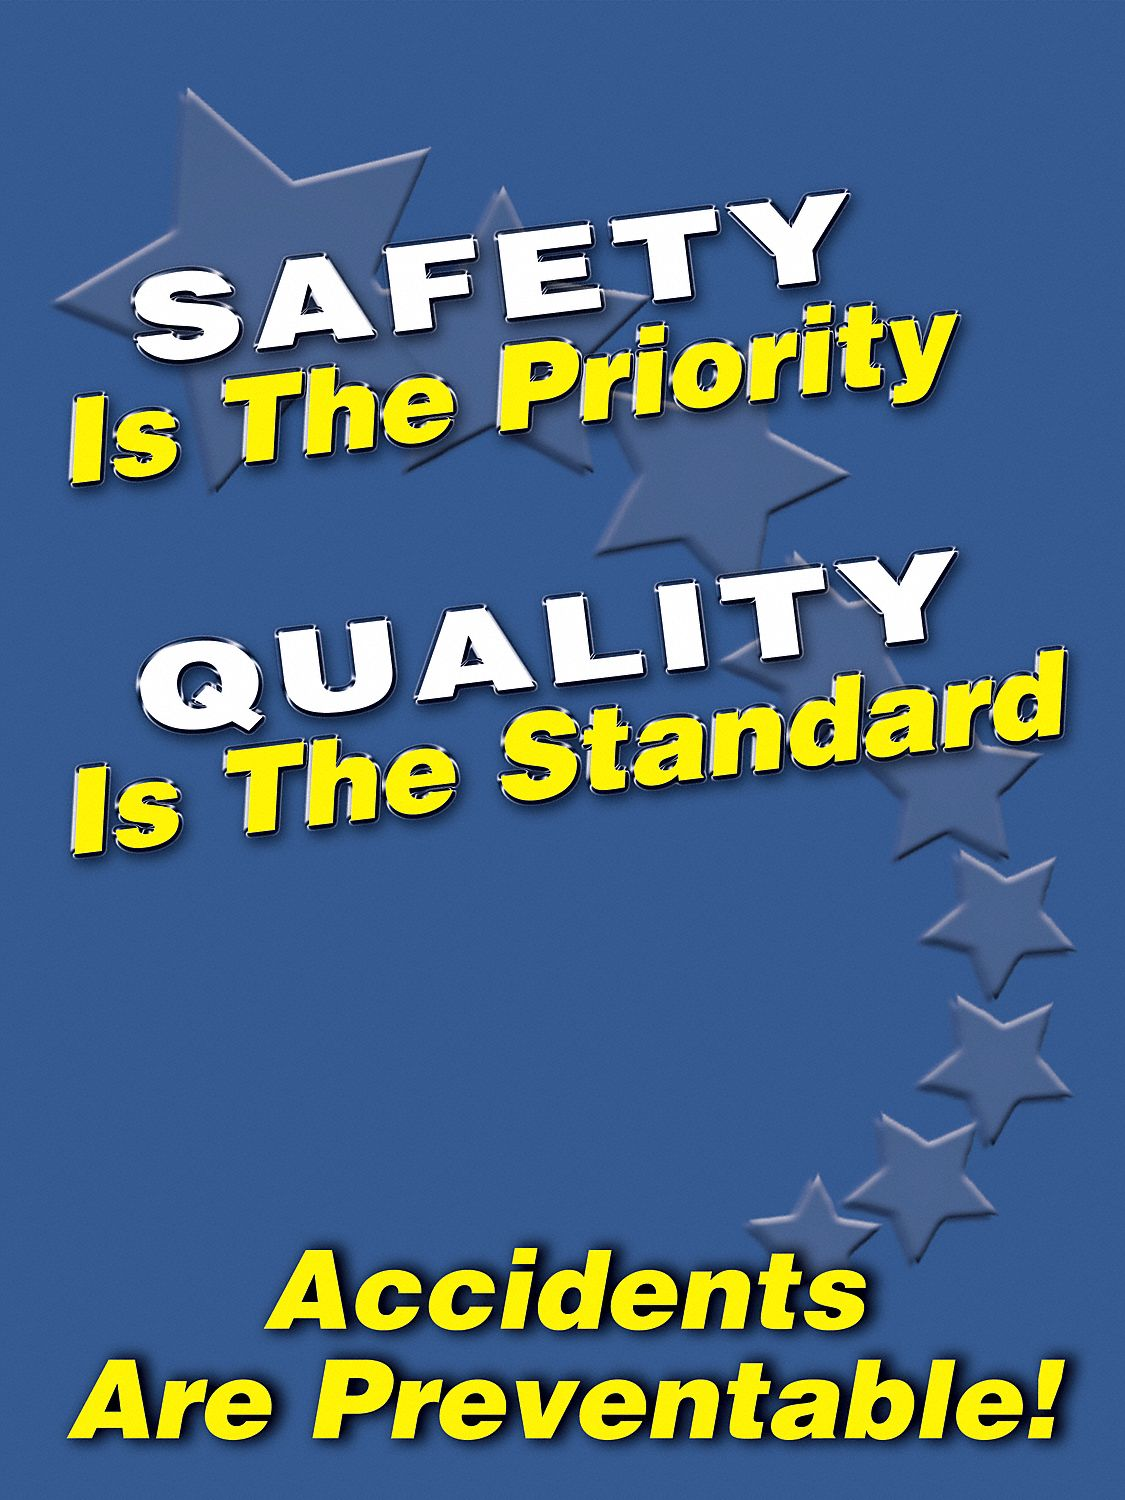 ACCUFORM Safety Poster English 24 X 18 1 EA 3TZE8